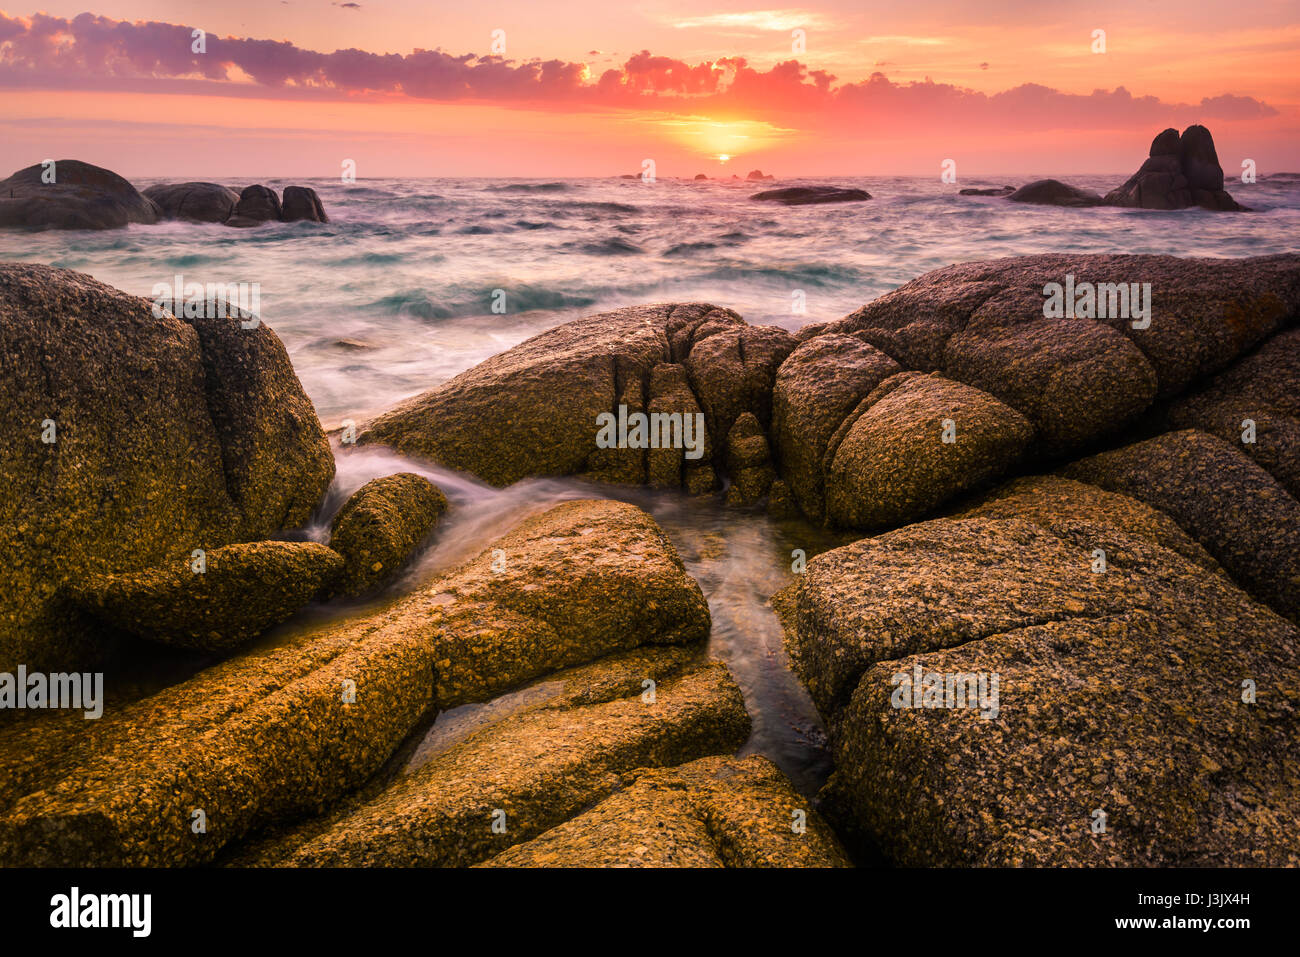 Deep Creek (Picnic Rocks) at Mount William National Park, Bay of Fires, Tasmania - Stock Image